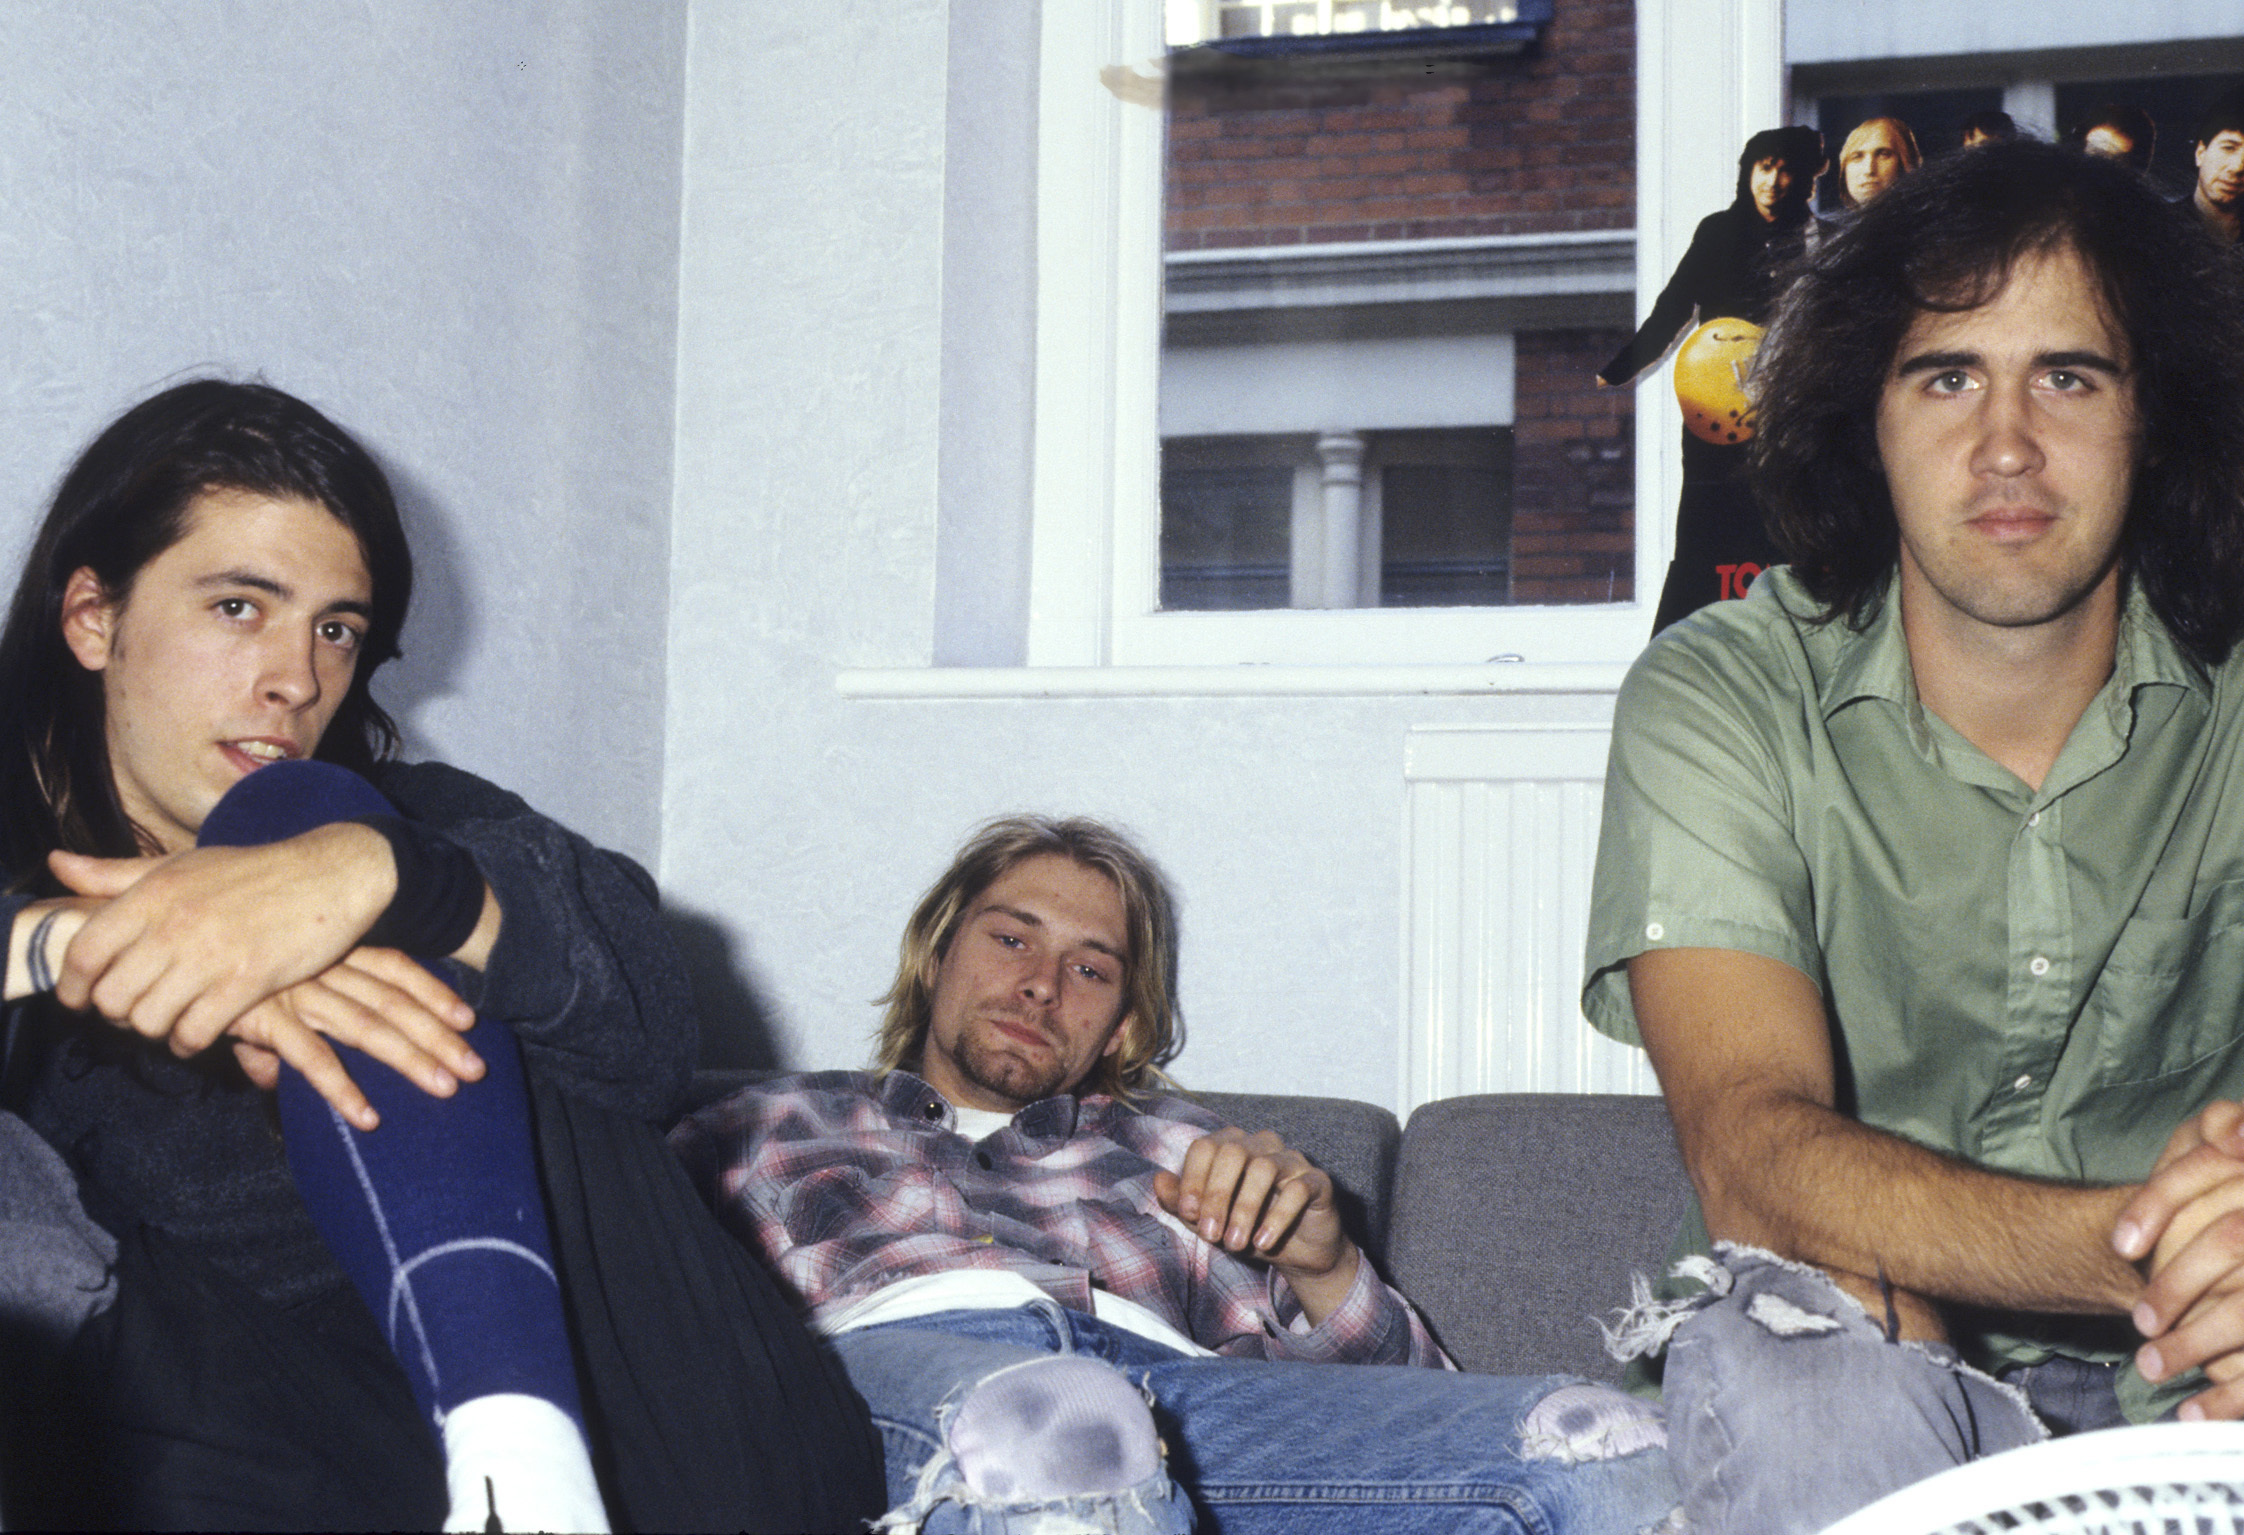 Dave Grohl, Kurt Cobain and Krist Novoselic